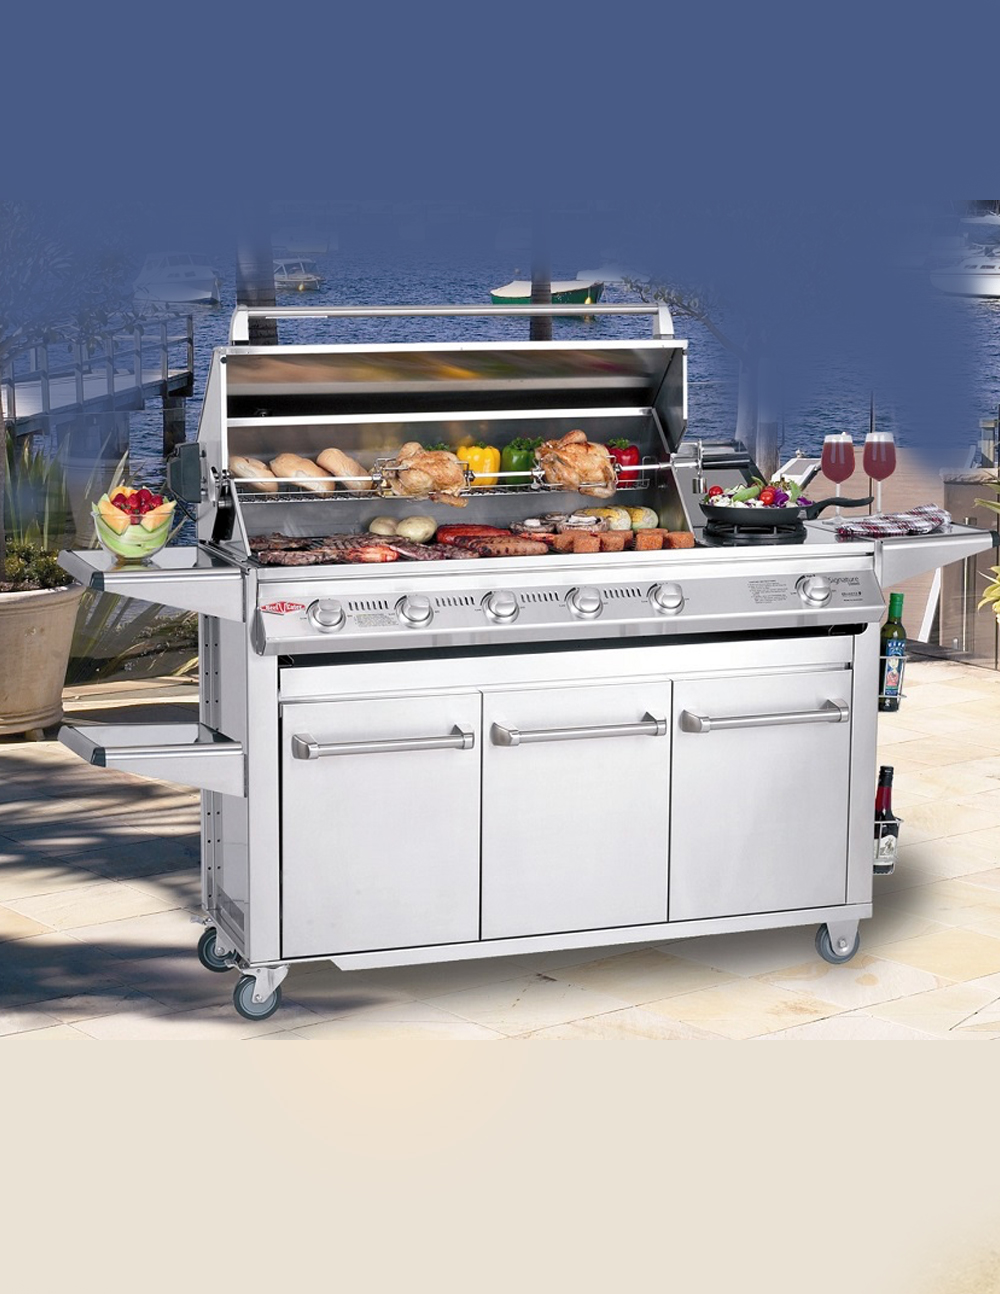 BeefEater Barbecue Signature SL4000 Situ 2 | Avant Garden Guernsey